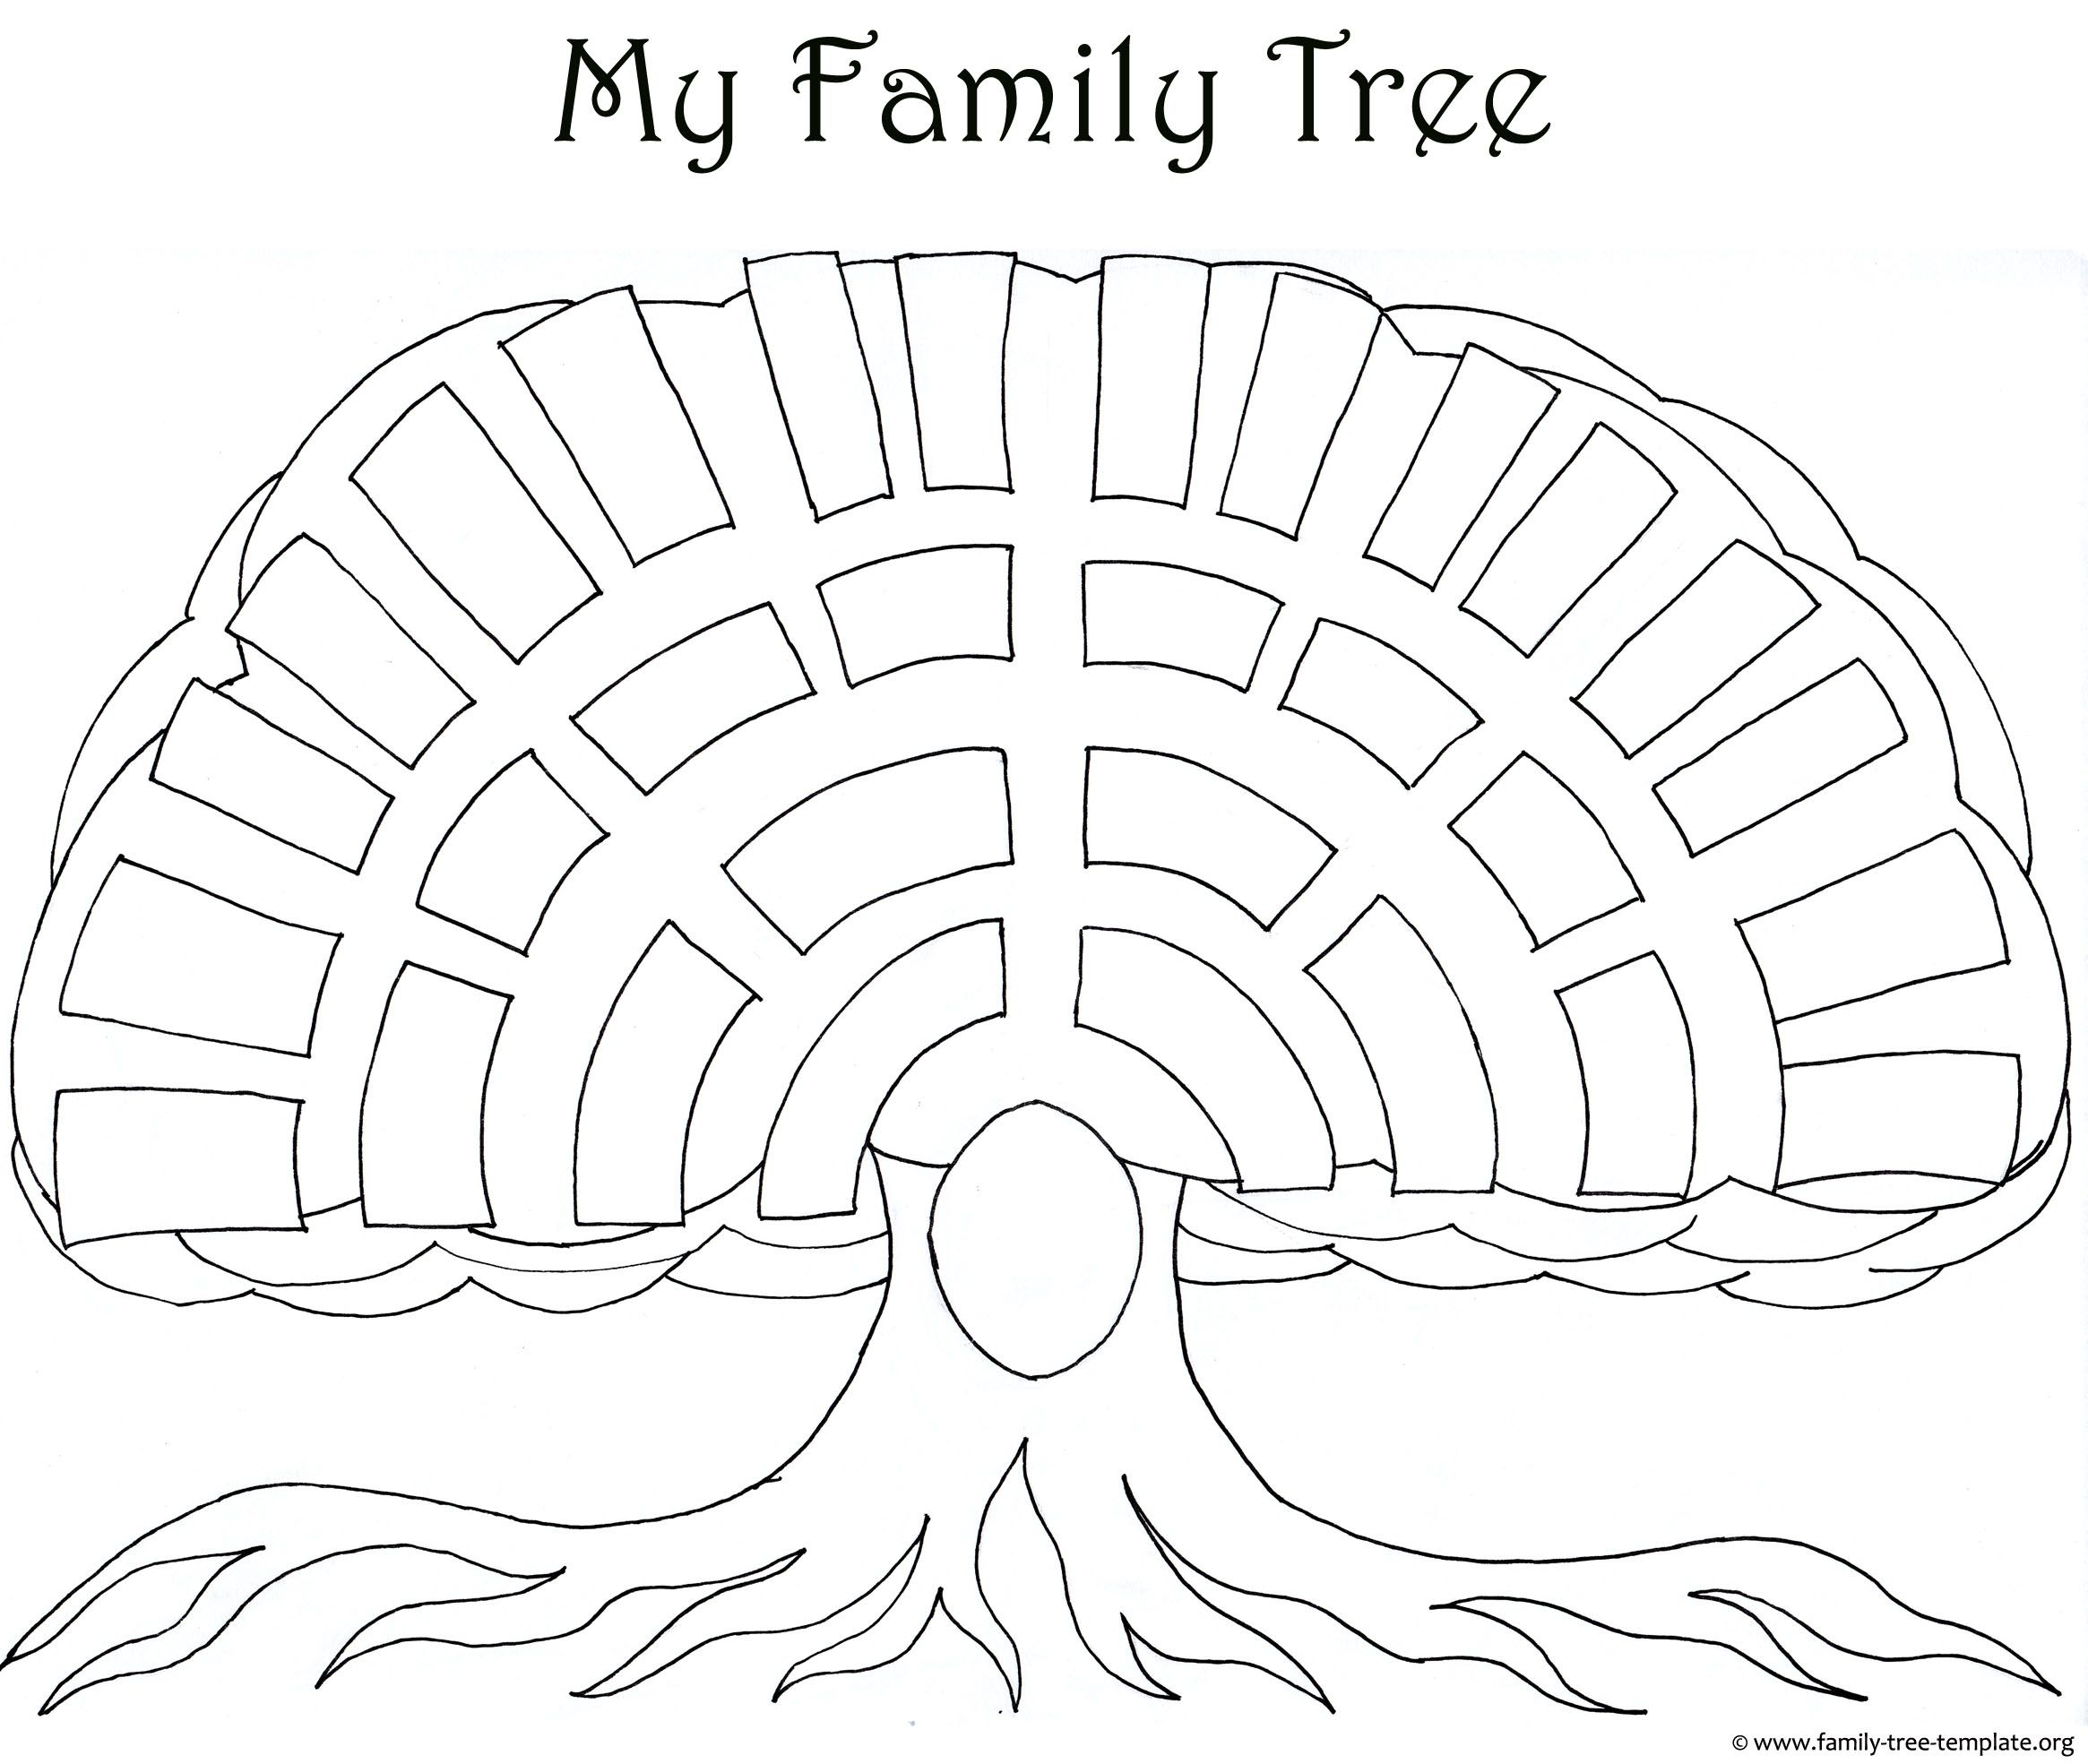 Big Oak Family Tree Template As A Coloring Page For Kids And Their